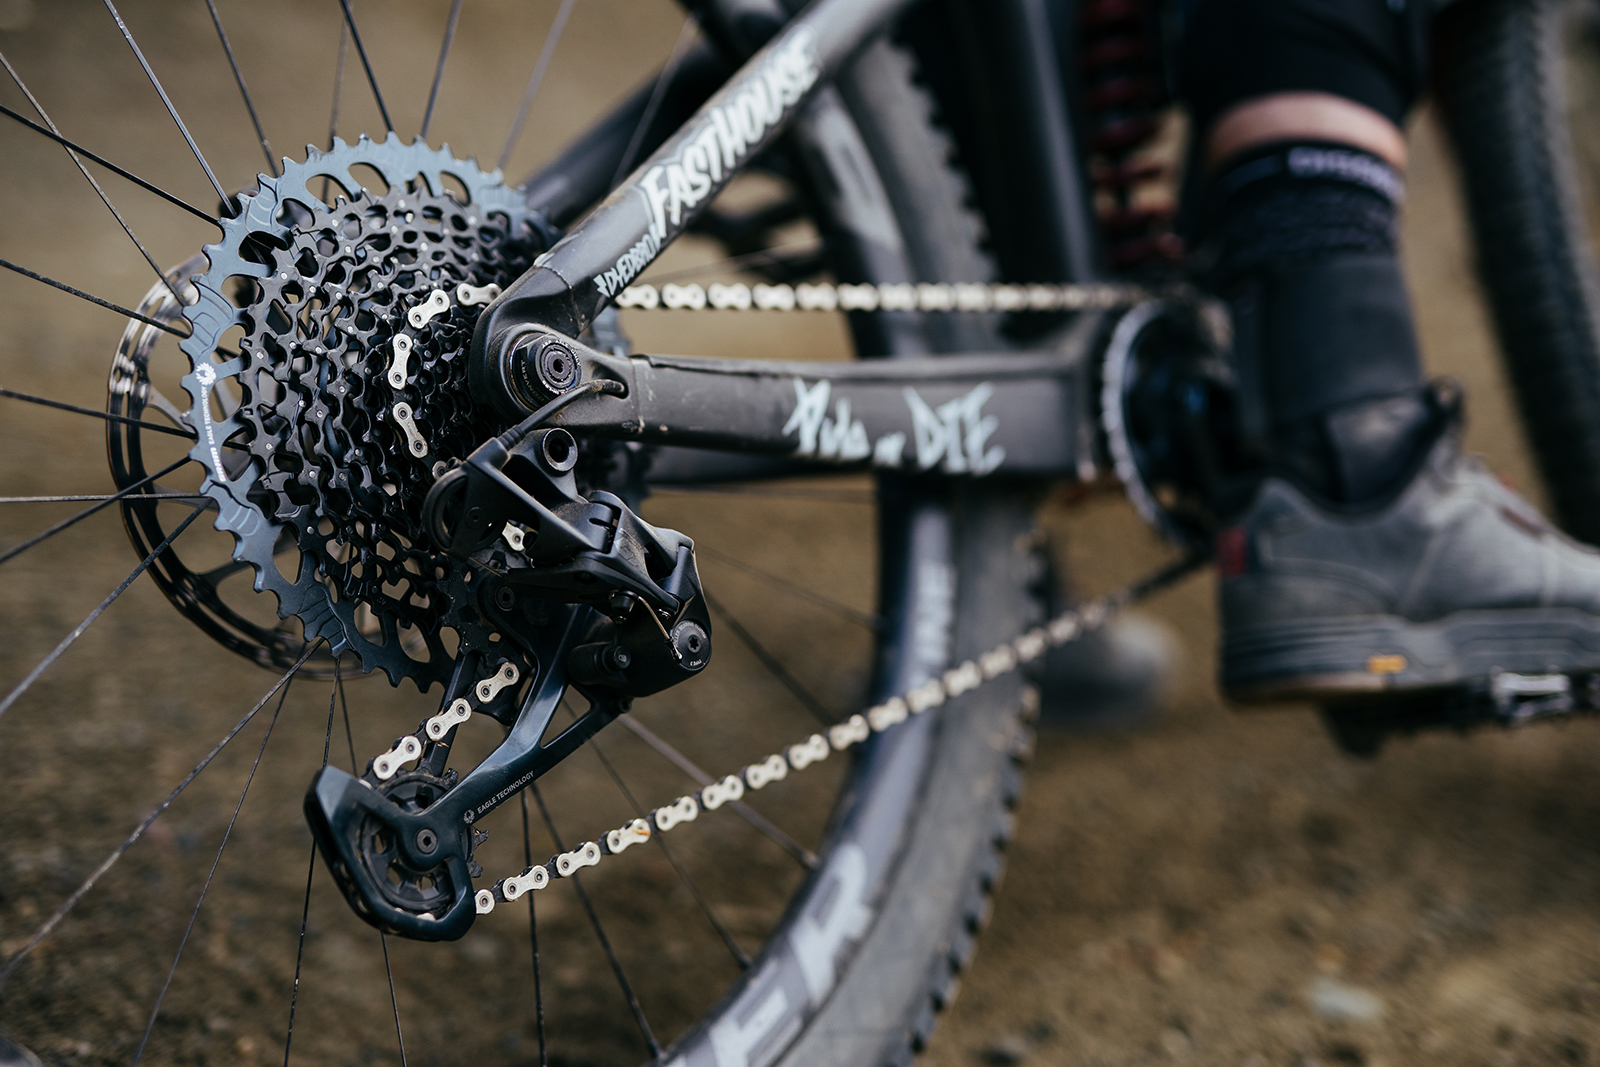 The new Expanded Range Eagle rear derailleurs were developed to work with SRAM's new 10-52T cassettes, though they are backward compatible with 10-50T cassettes.